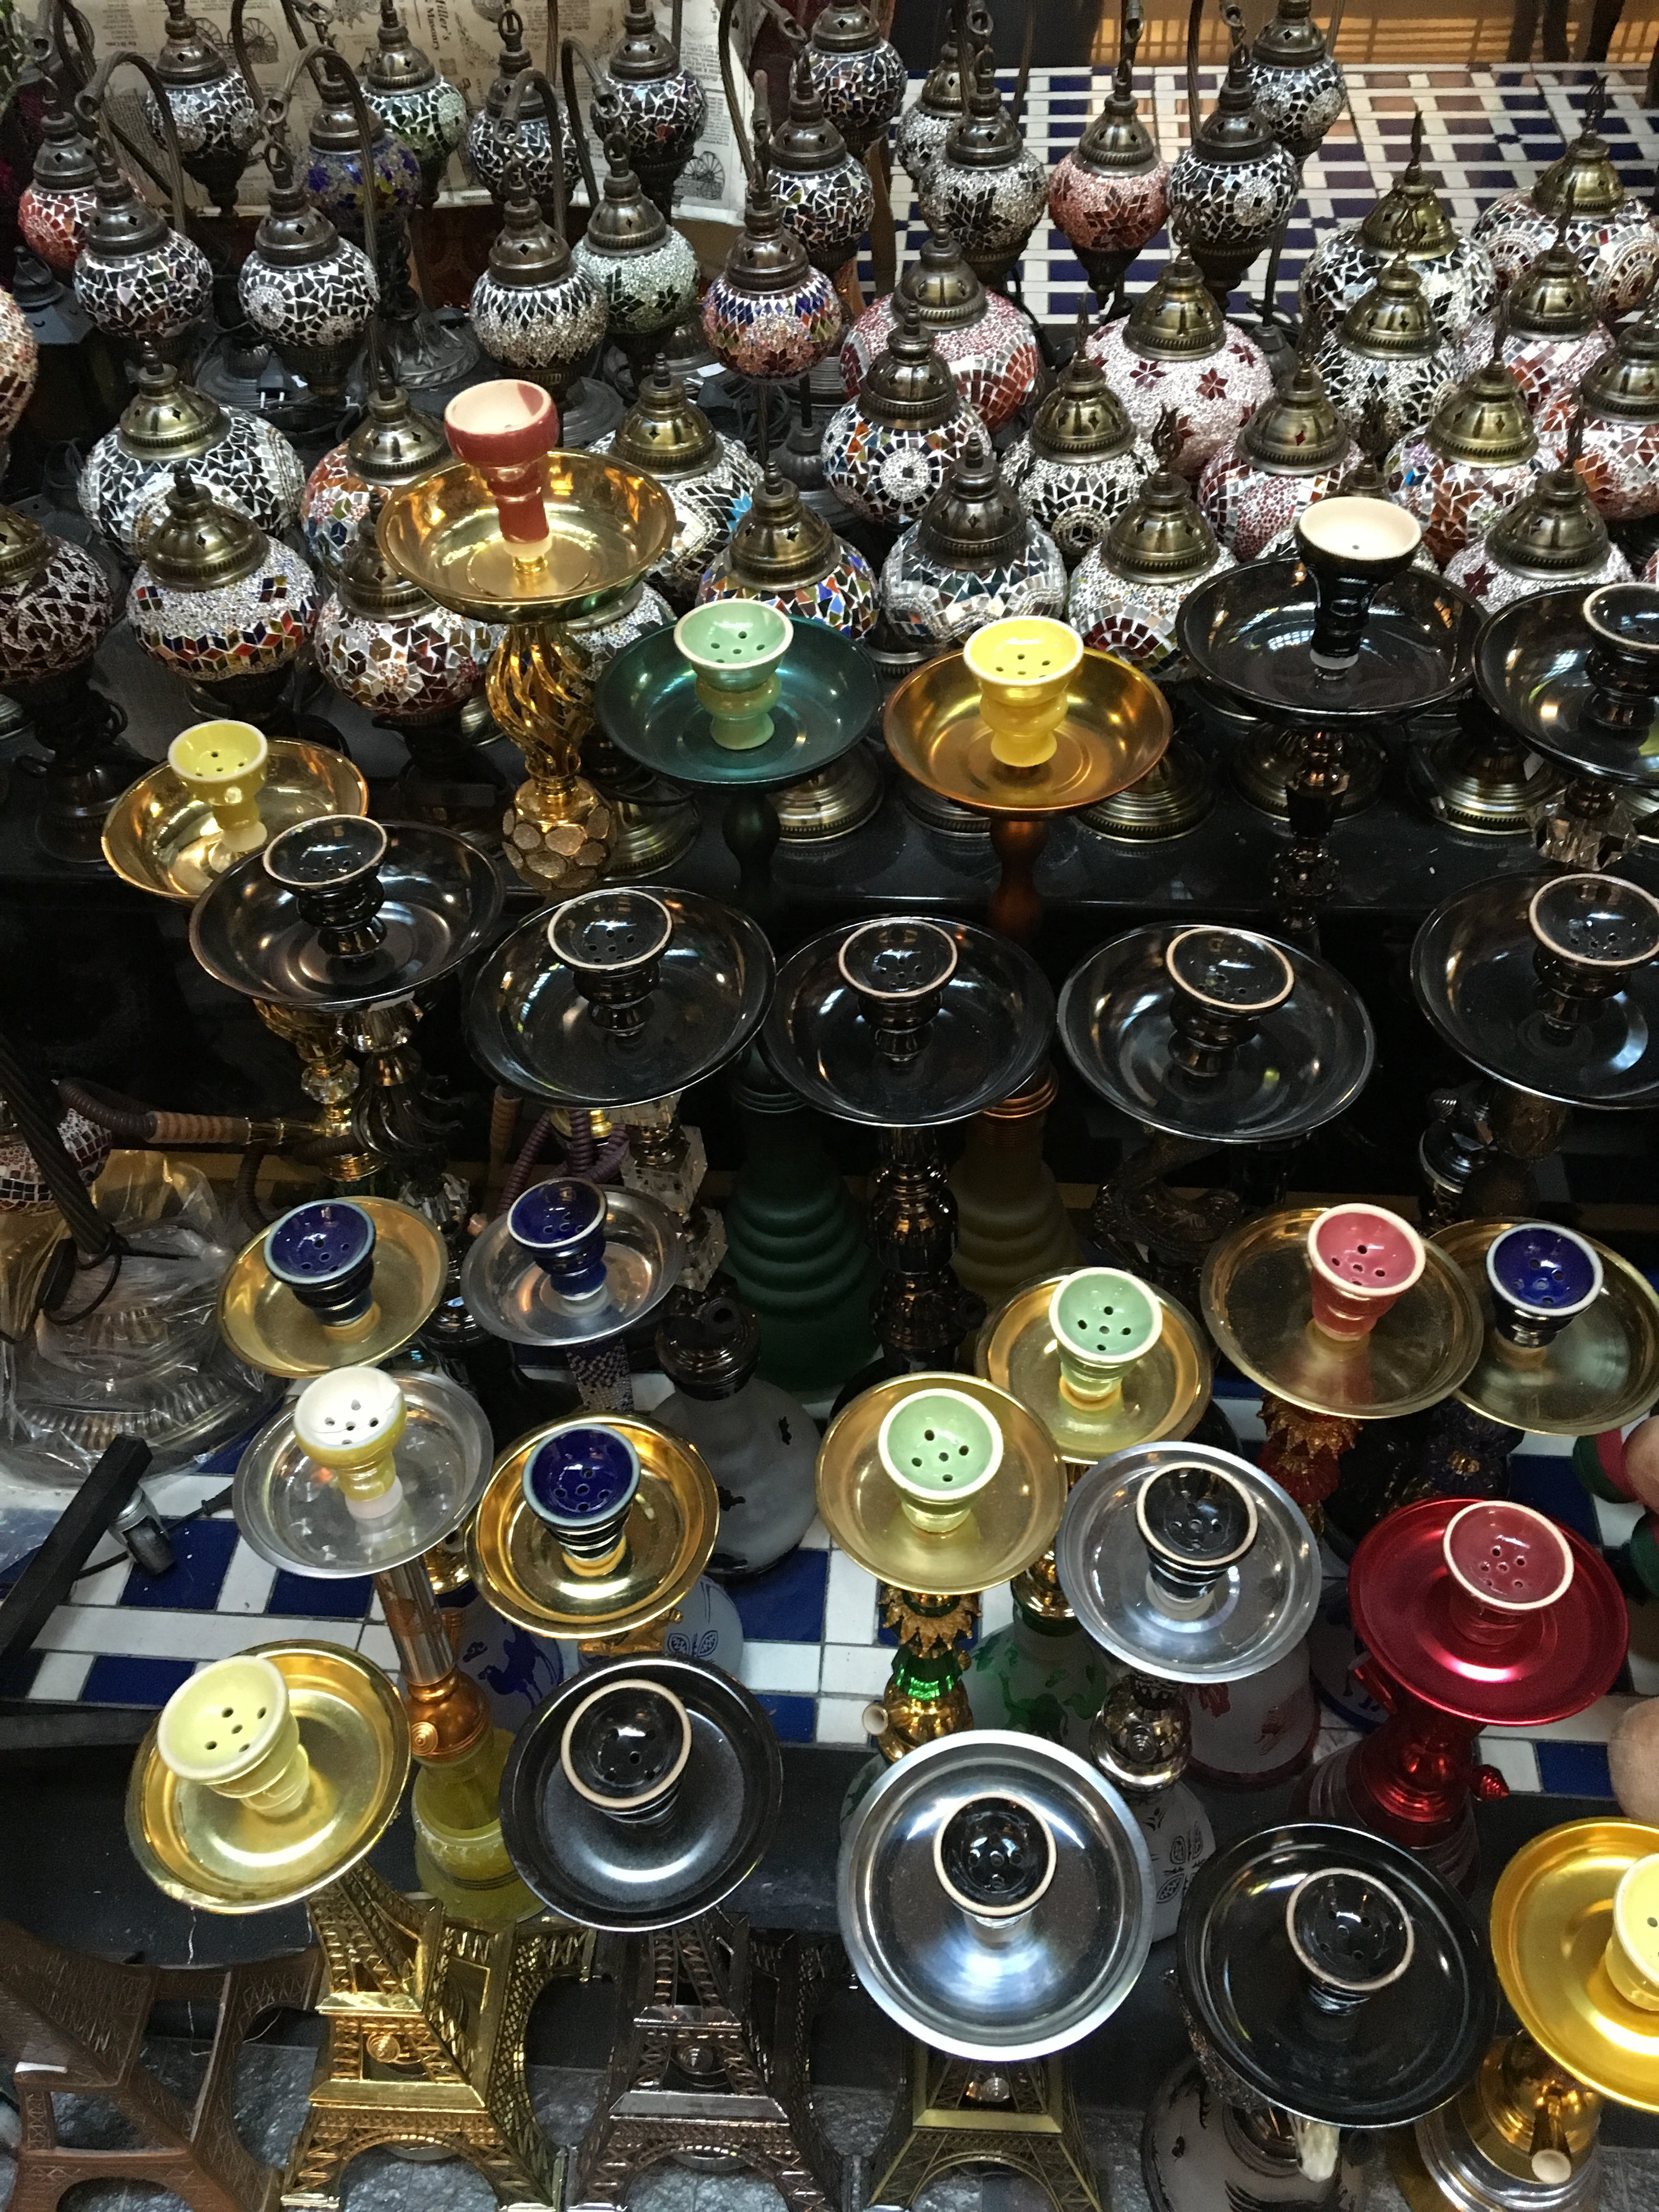 Colorful hookah pipes at the Souk Central Market in Abu Dhabi